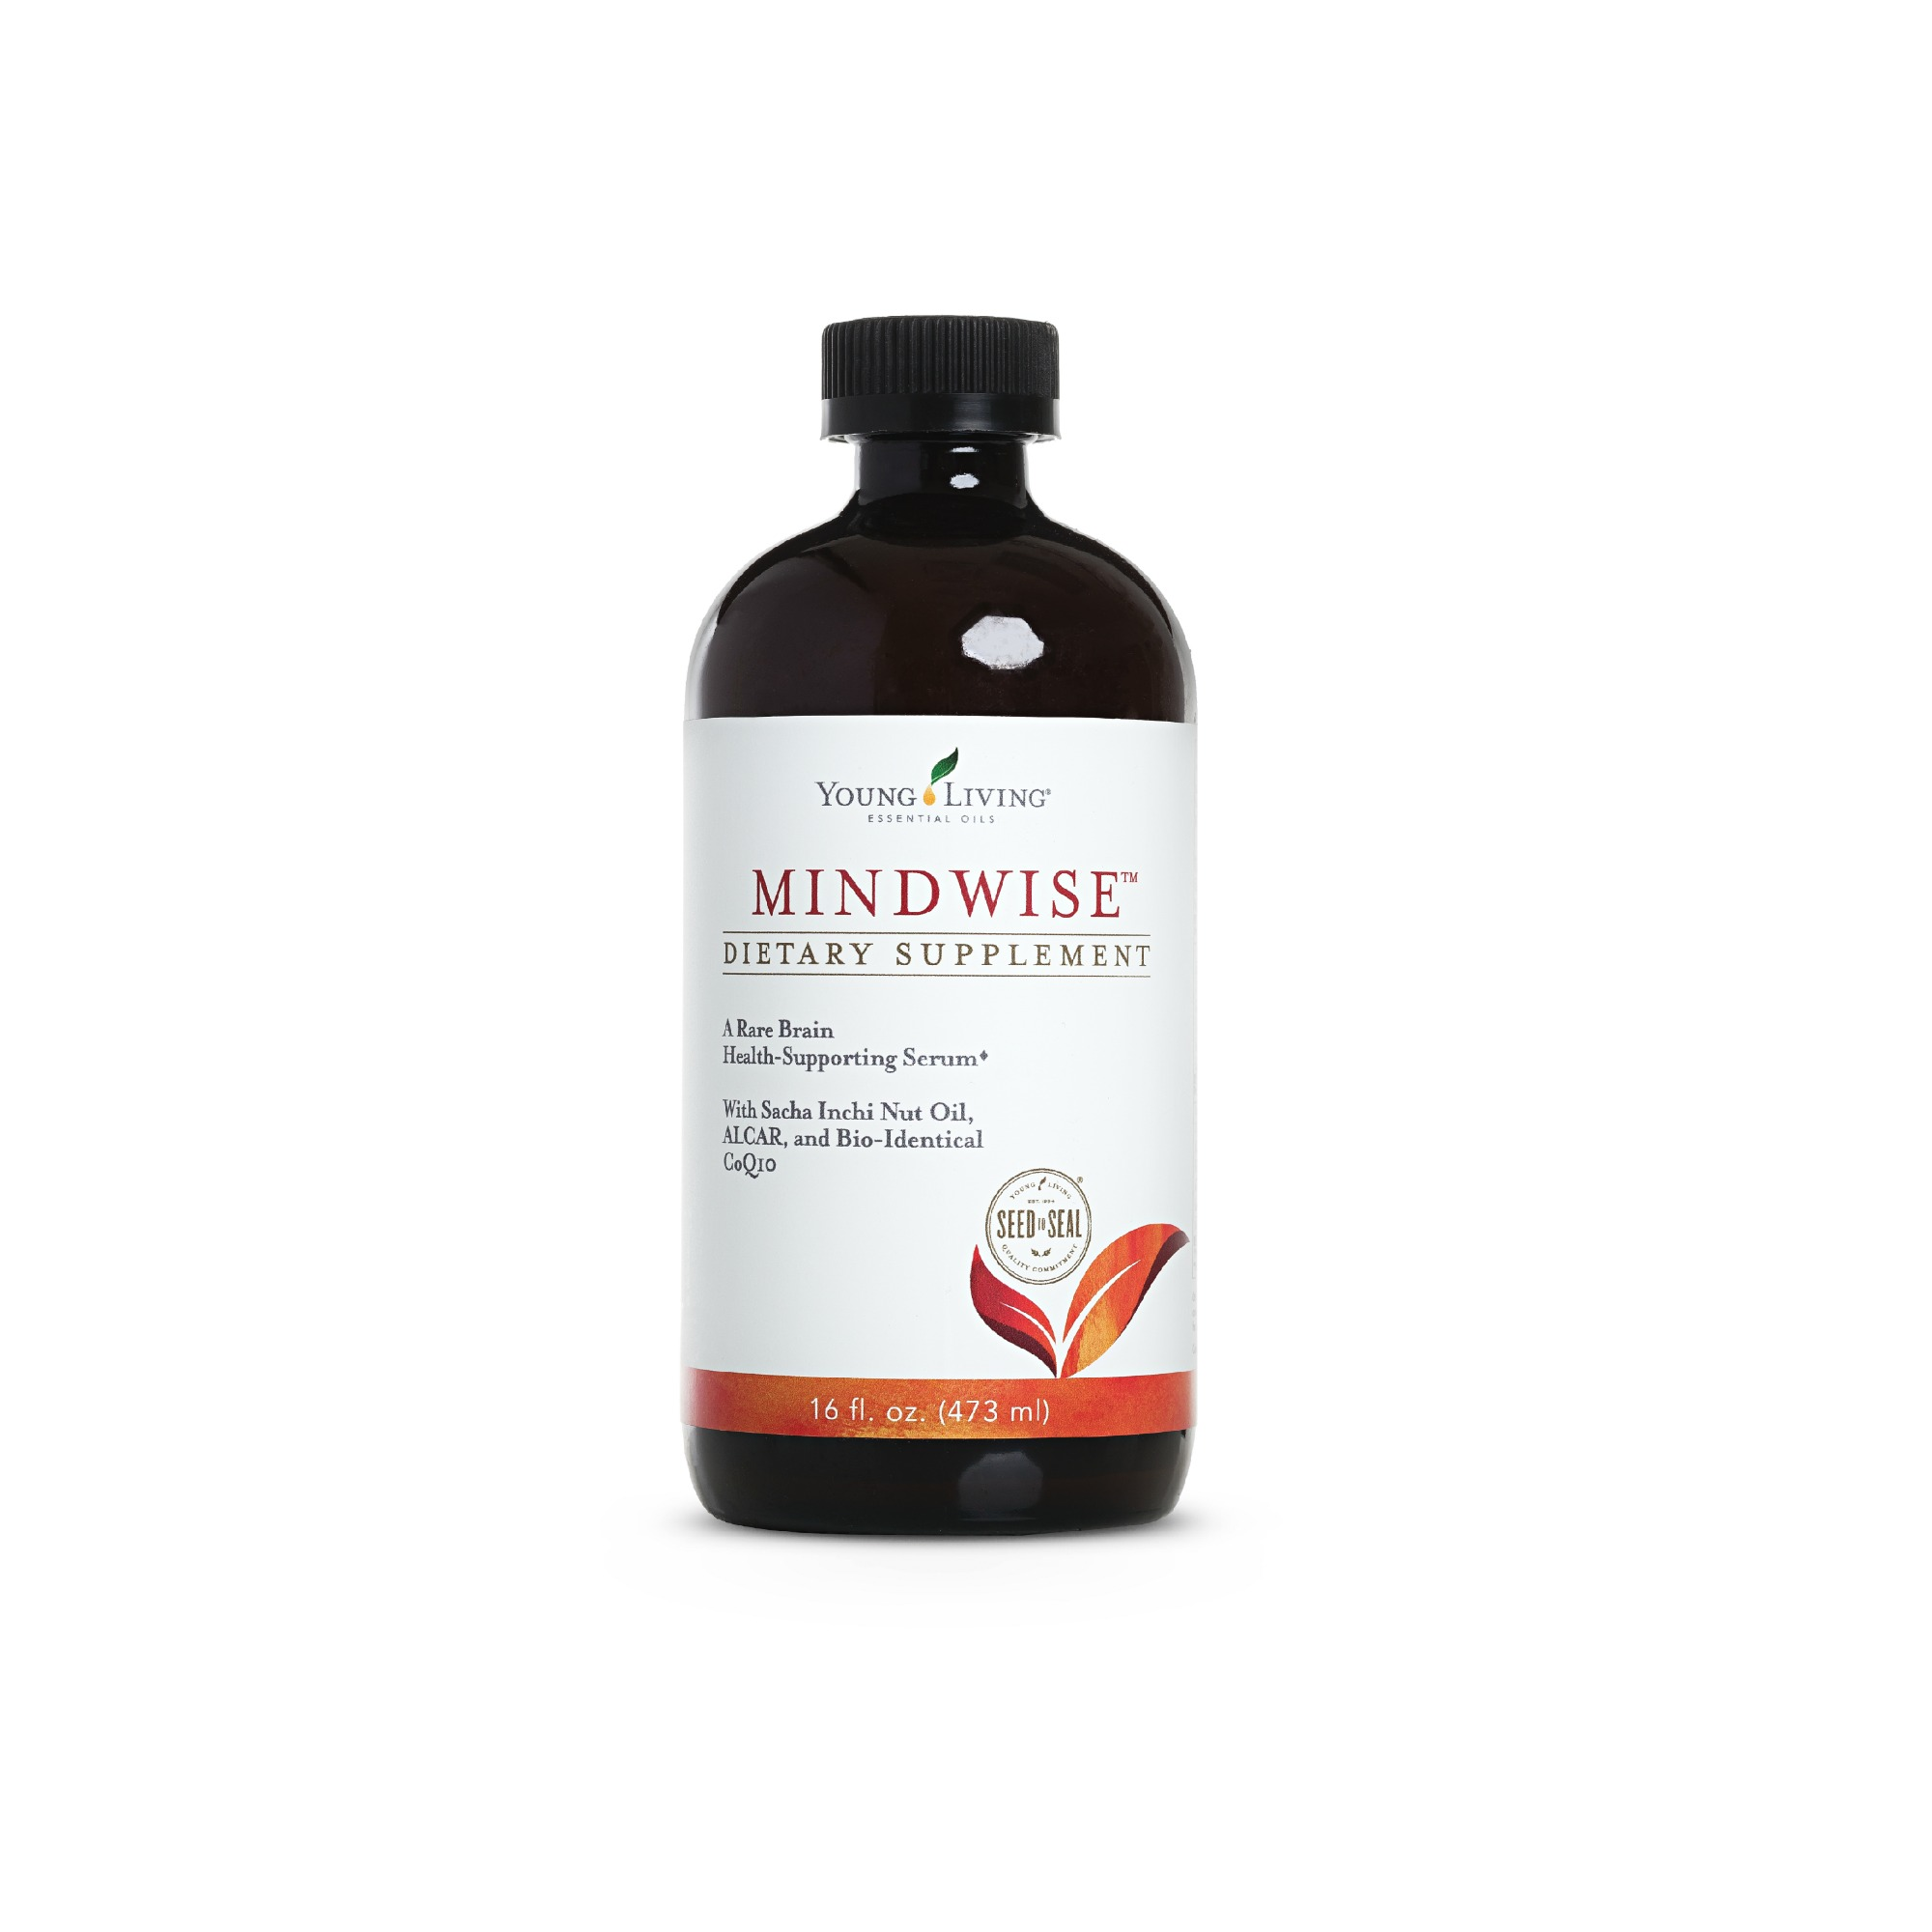 MINDWISE    MindWise supports normal cardiovascular health and cognitive health. With a vegetarian oil made from cold-pressed sacha inchi seeds and other medium-chain triglyceride oils, MindWise has a high proportion of unsaturated fatty acids and omega-3 fatty acids. Plus, it uses a combination of fruit juices and extracts, turmeric, and pure essential oils to create a heart and brain function supplement with a taste you'll love. MindWise also includes the proprietary memory function blend made with bioidentical CoQ10, ALCAR, and GPC, ingredients that have been studied for their unique benefits. With generous amounts of vitamin D3, this premium supplement is equipped to support normal brain function and overall cognitive and cardiovascular health.   Click here   to learn more about this product.